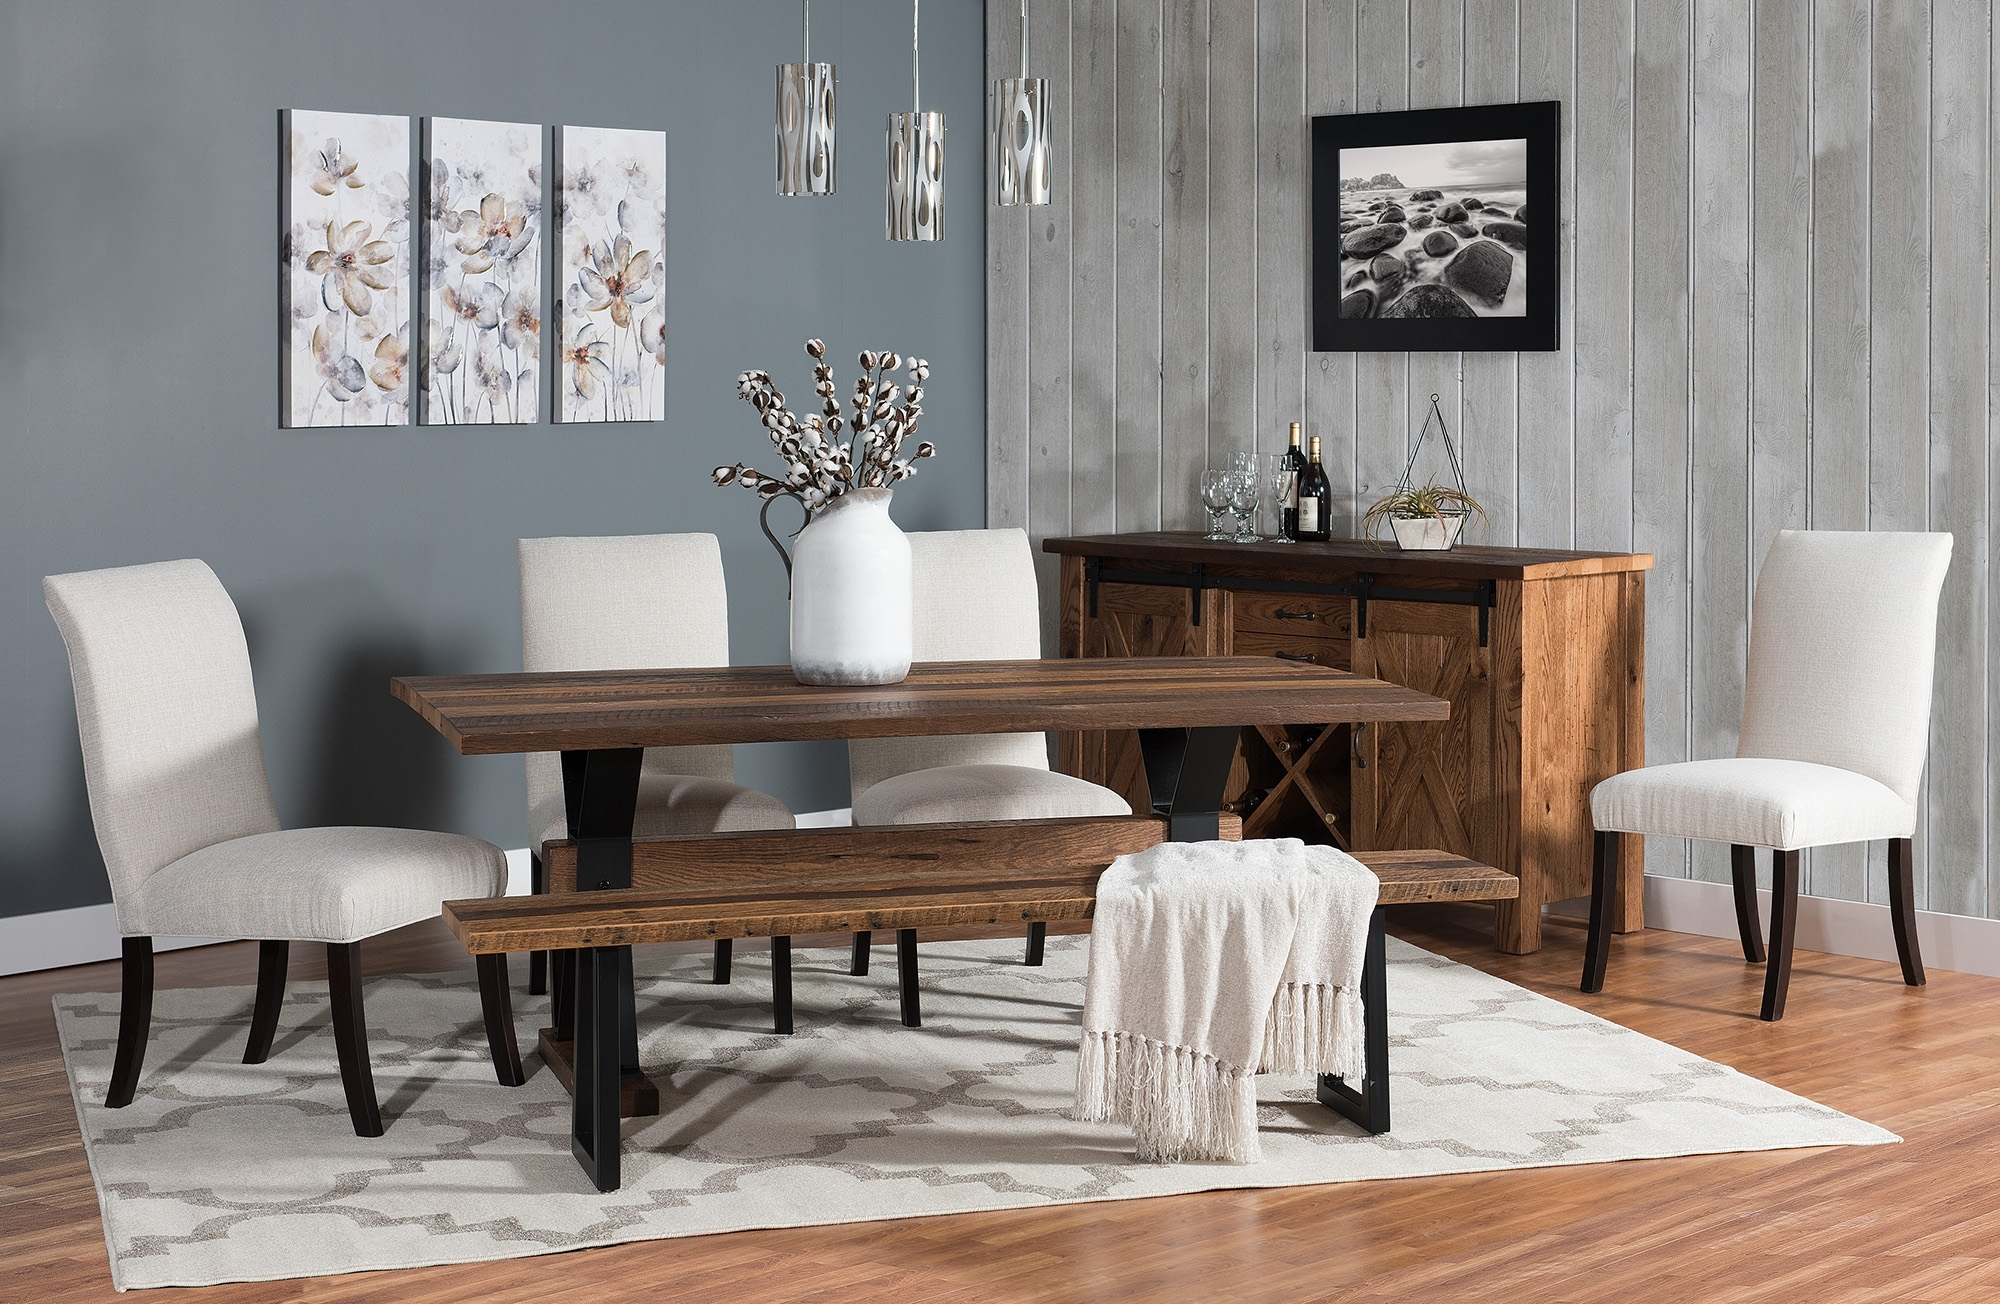 Weaver Ii Dining Tables Within 2017 Barnloft Trestle Dining Group – Weaver Furniture Sales (View 6 of 25)